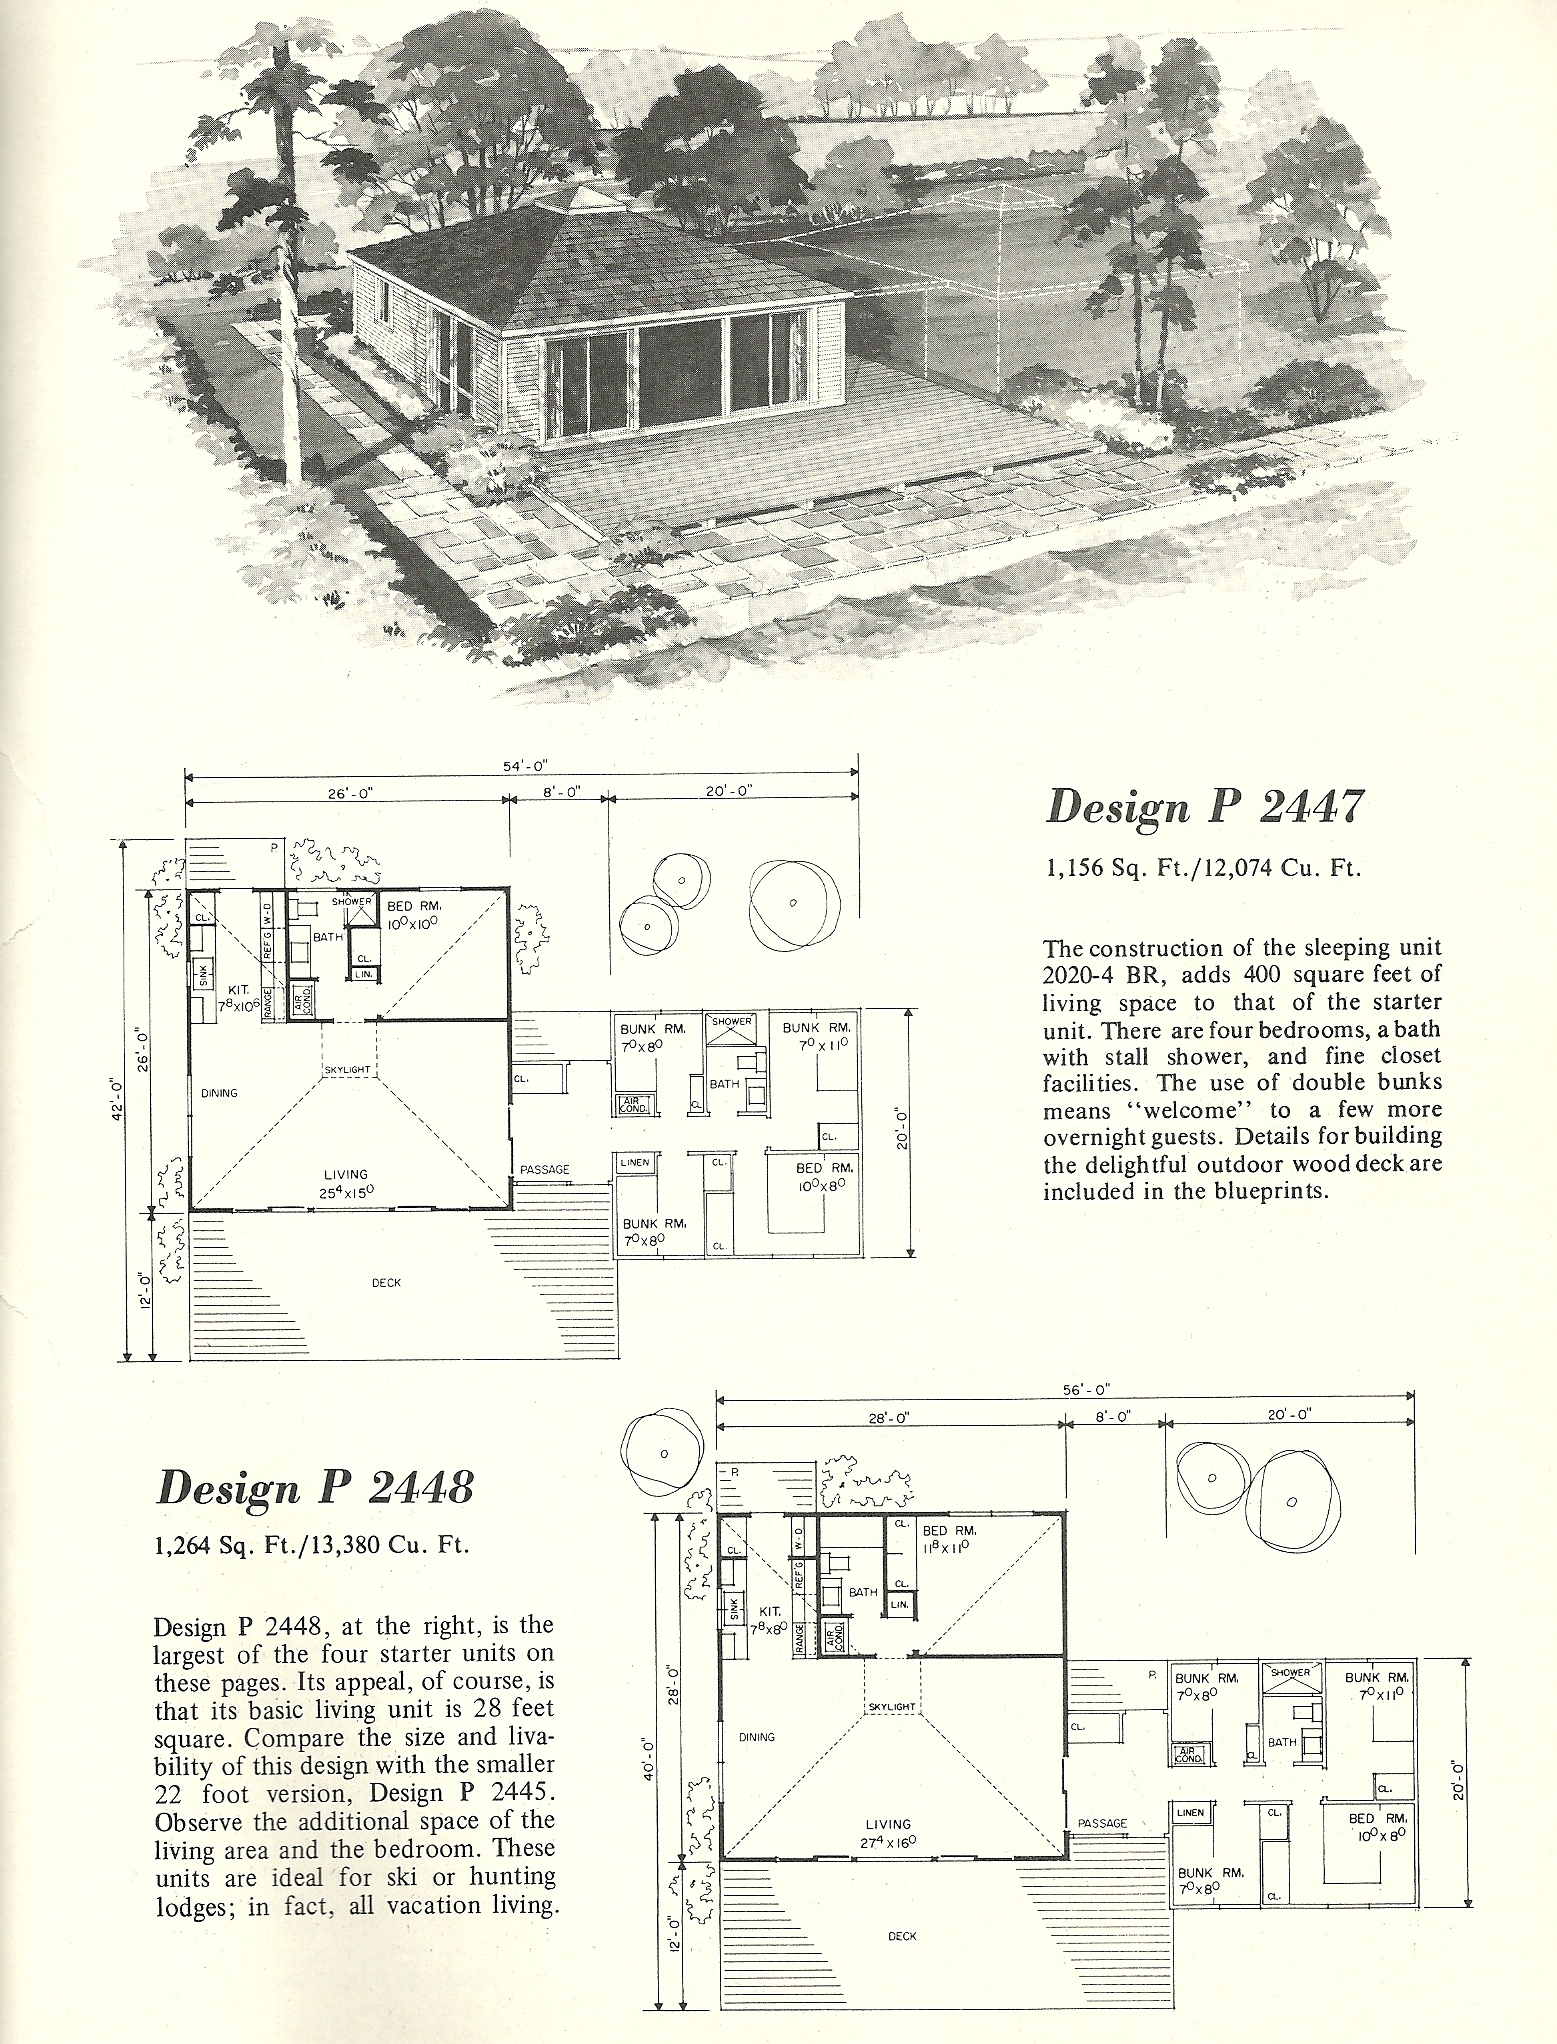 Vintage home plans cluster units 2447 antique alter ego for Cluster home plans